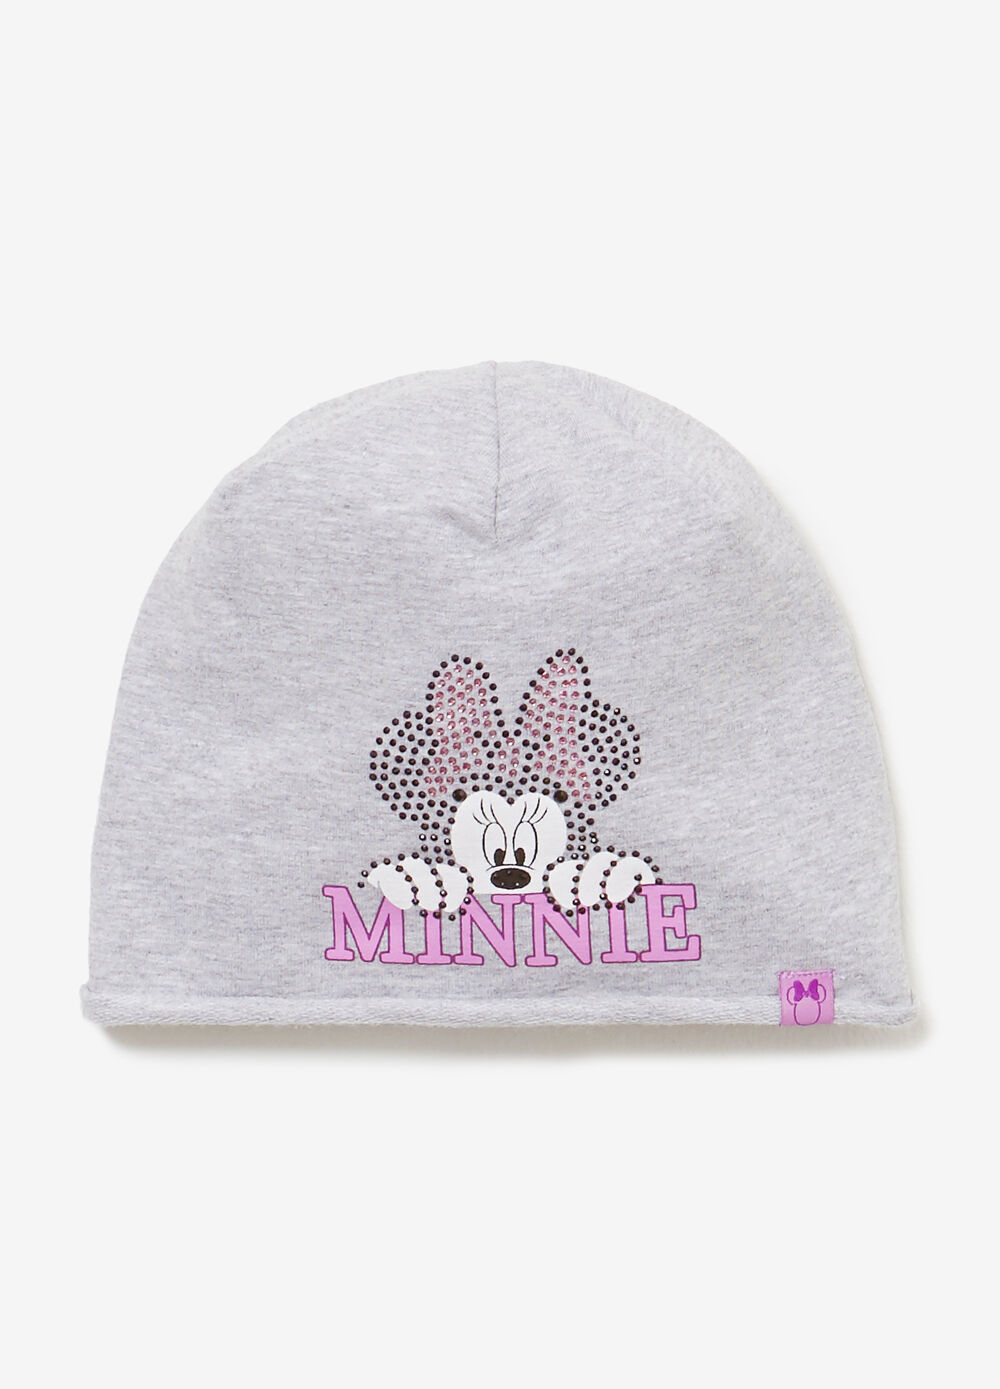 Minnie Mouse print and diamanté beanie cap